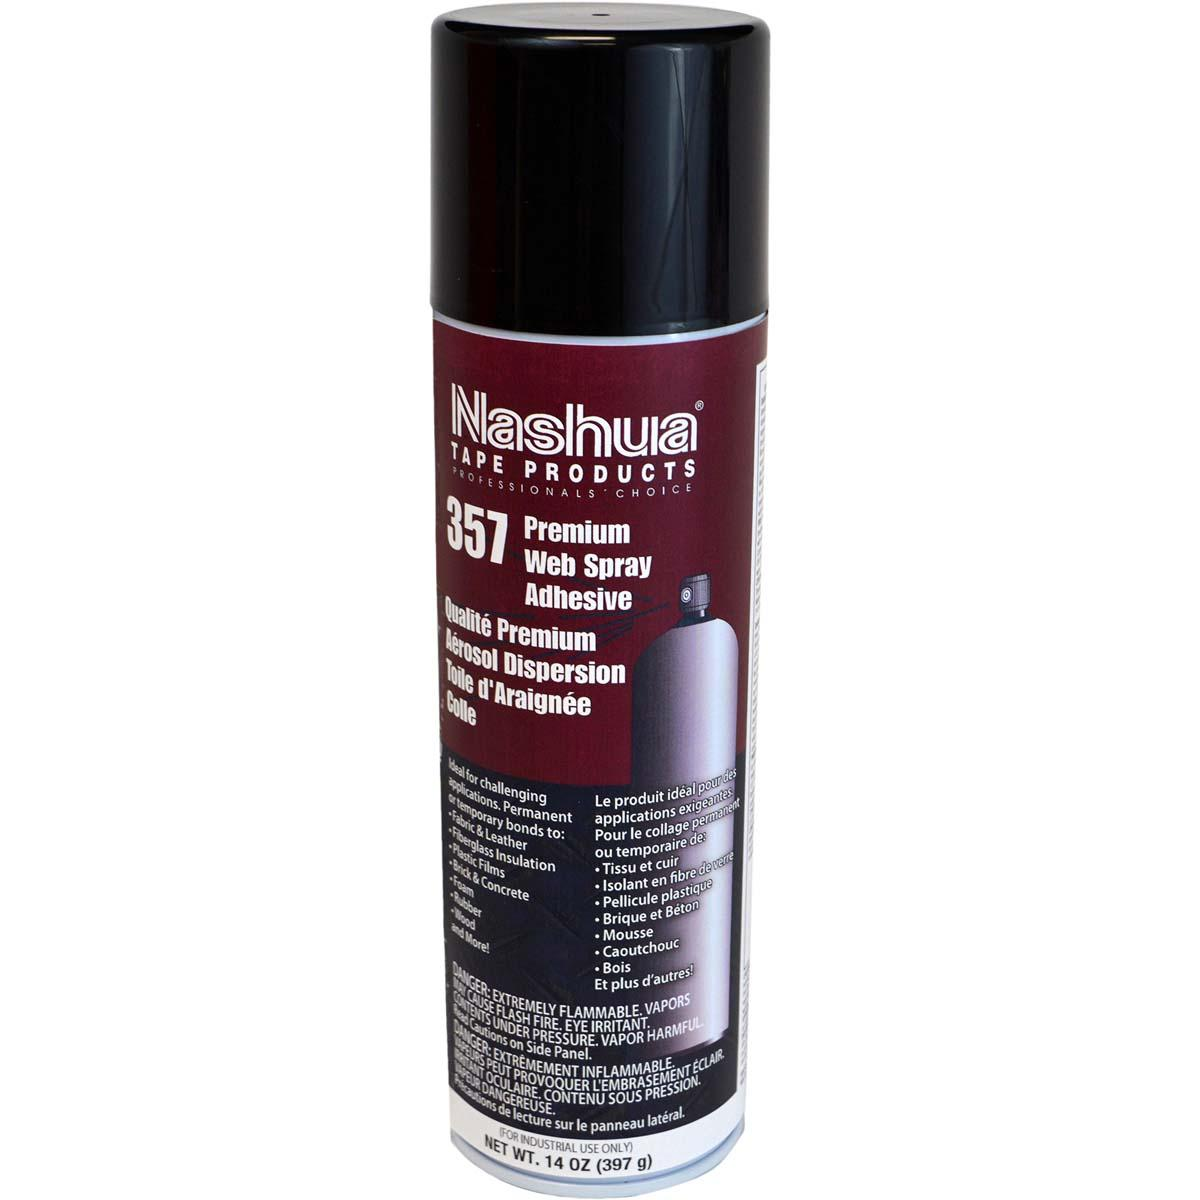 Nashua 357 Premium Web Spray Adhesive 14oz Net Wt, 19.6 FL OZ